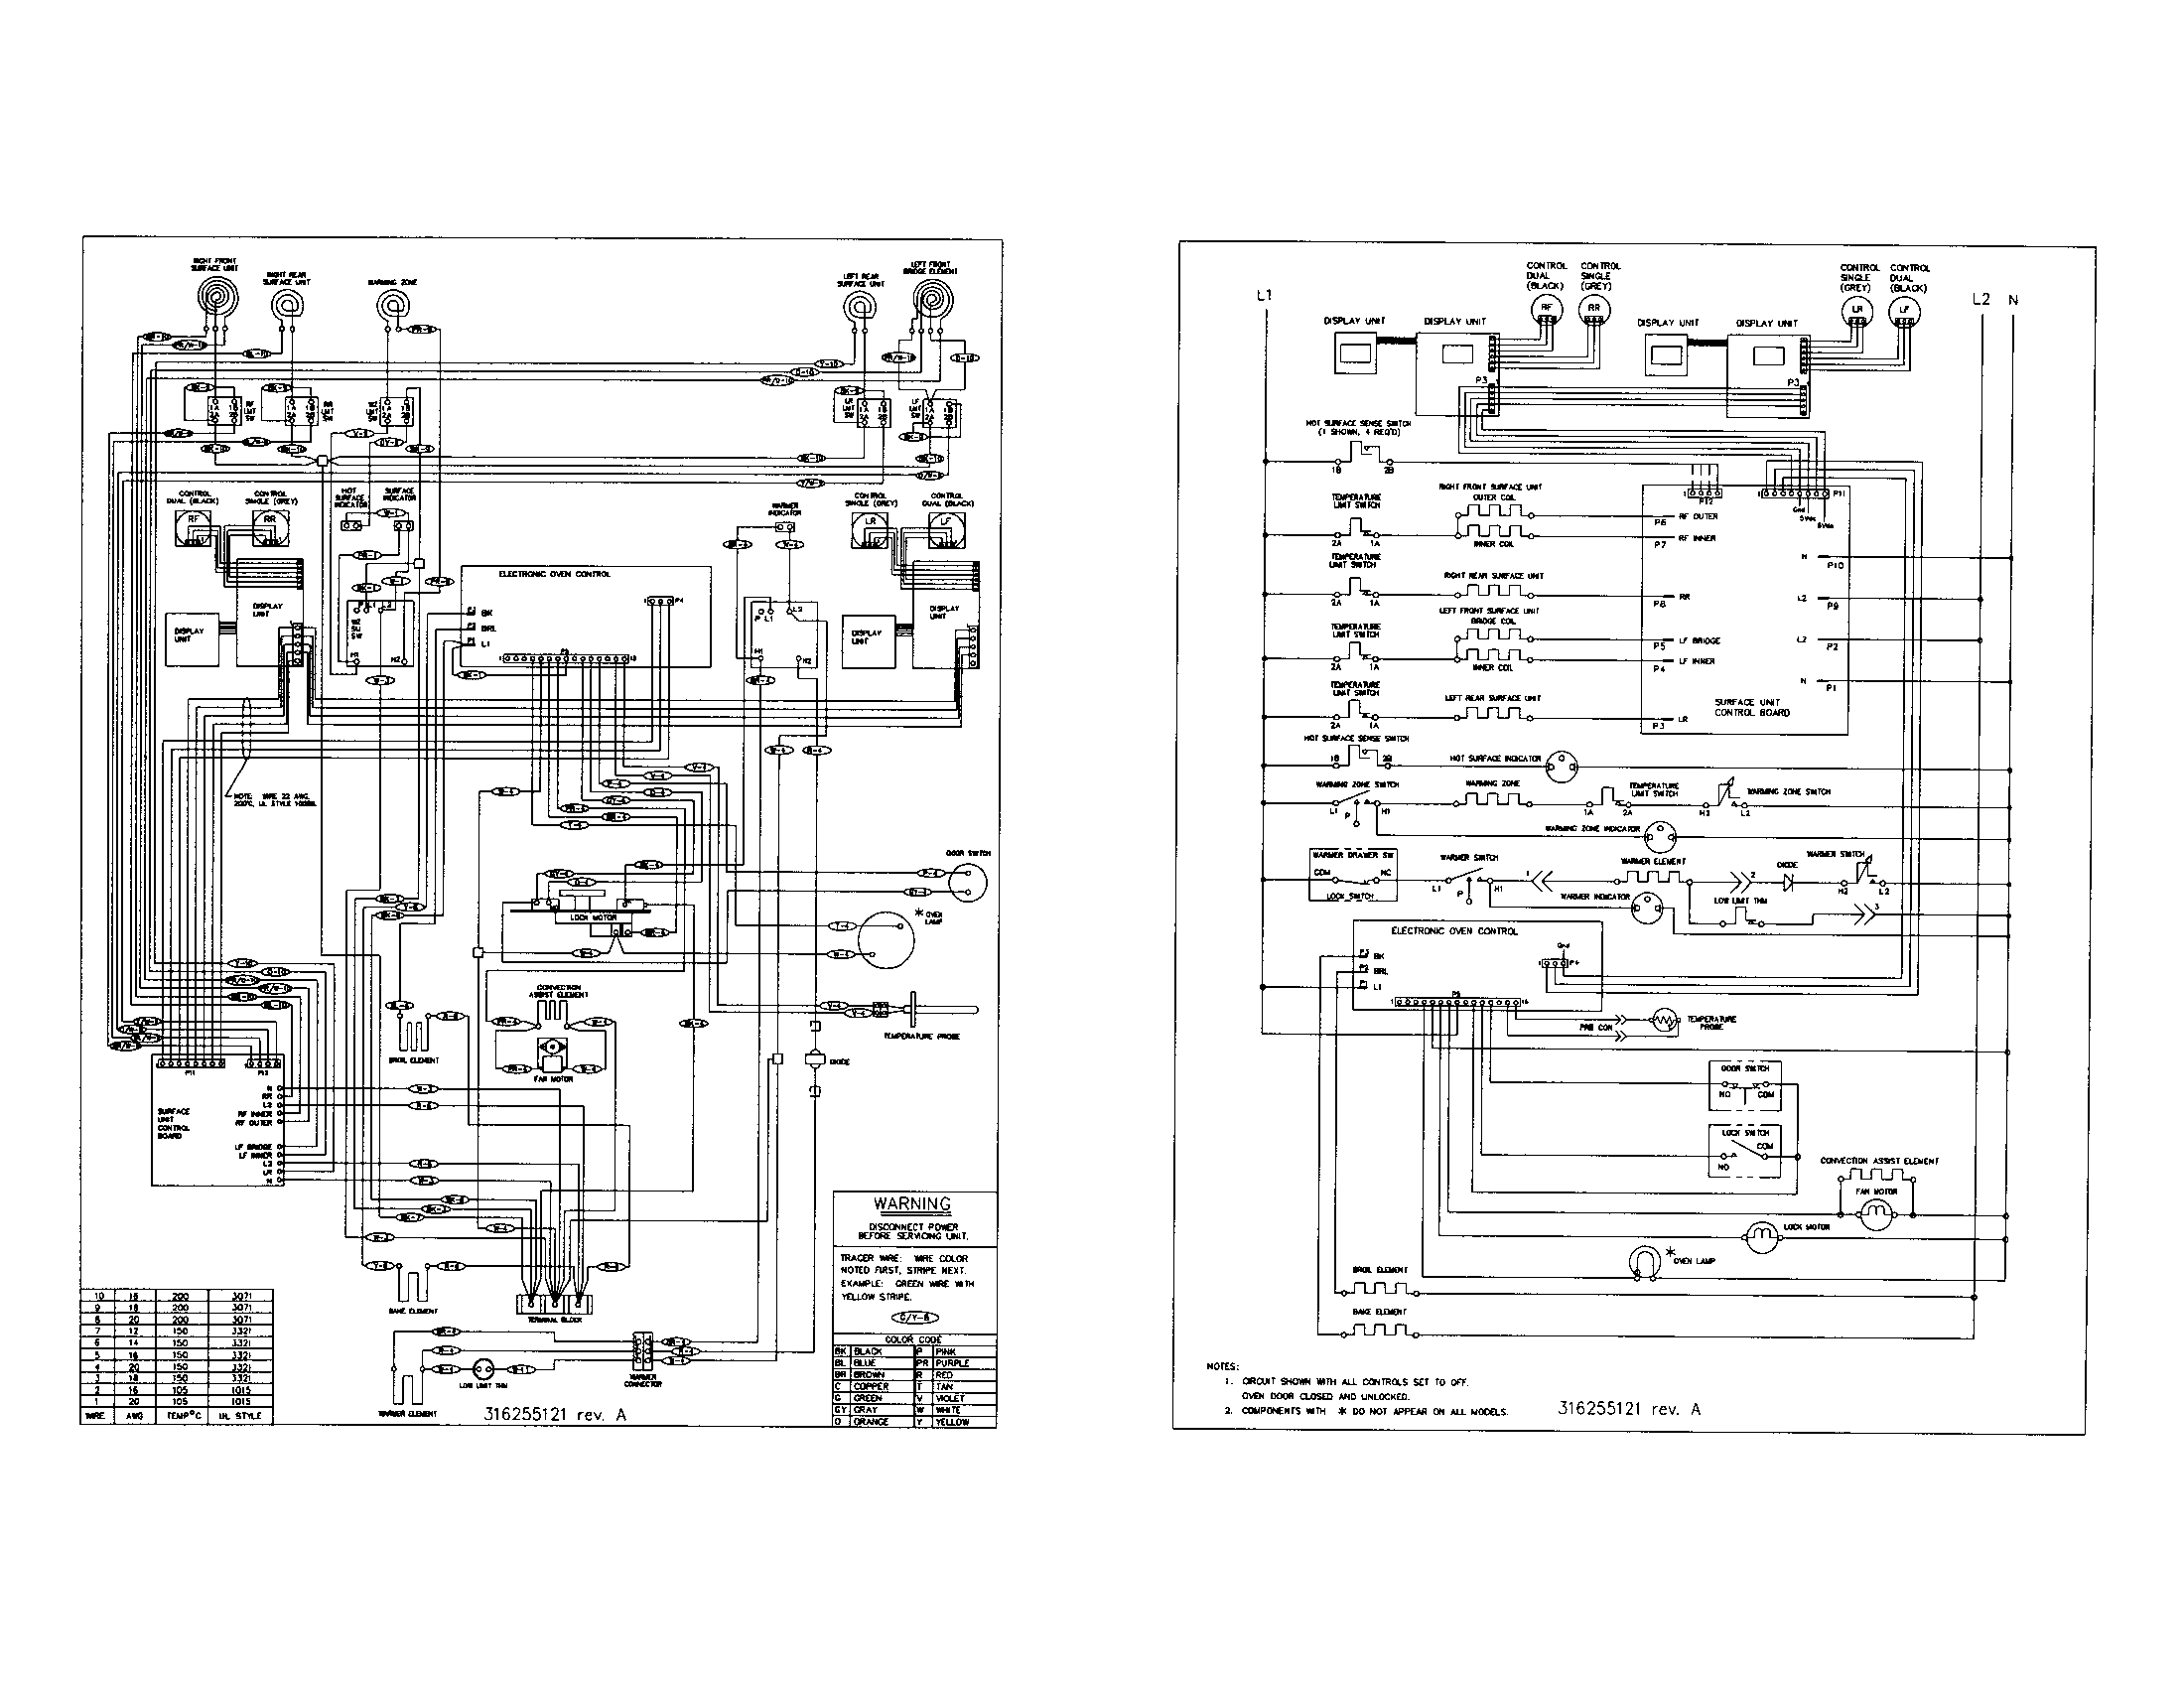 wiring diagram parts wiring diagram for frigidaire refrigerator readingrat net frigidaire gallery dryer wiring diagram at mr168.co